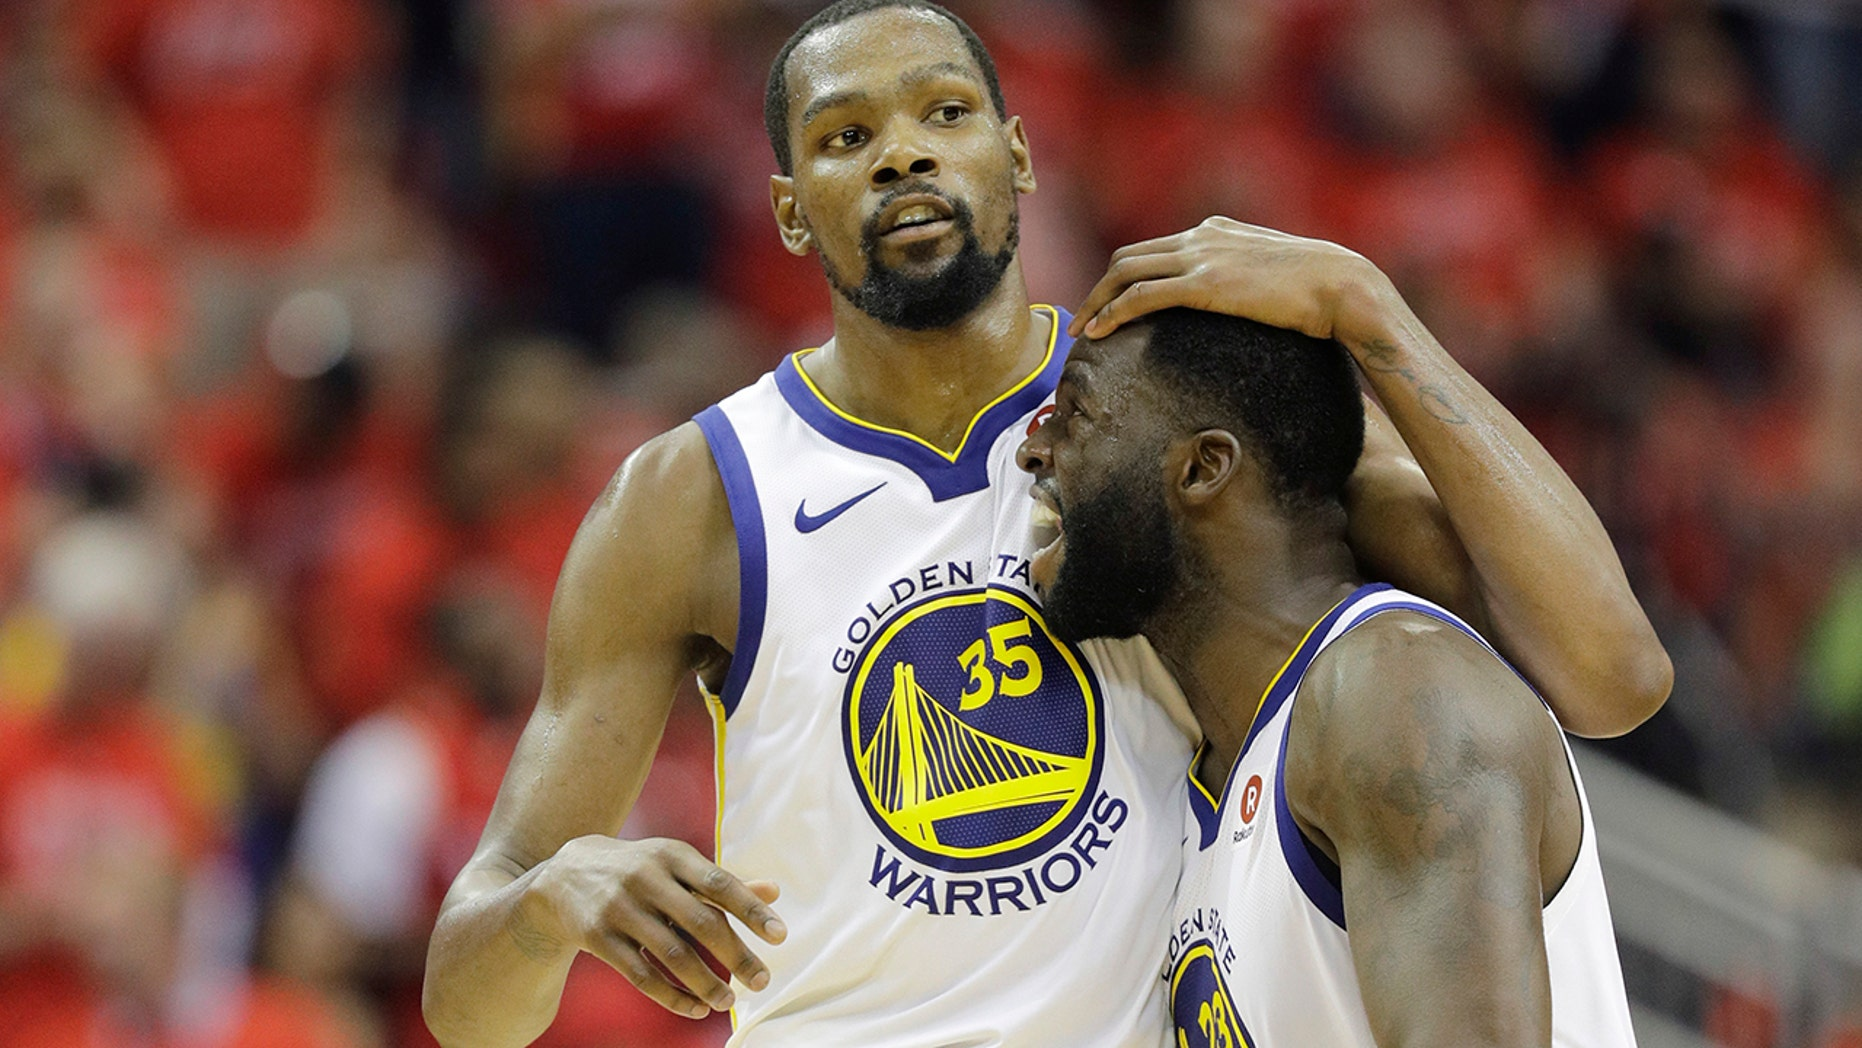 Golden State Warriors forward Kevin Durant (35) celebrates with teammate Draymond Green (23) during the second half in Game 7 of the NBA basketball Western Conference finals against the Houston Rockets, Monday, May 28, 2018, in Houston.